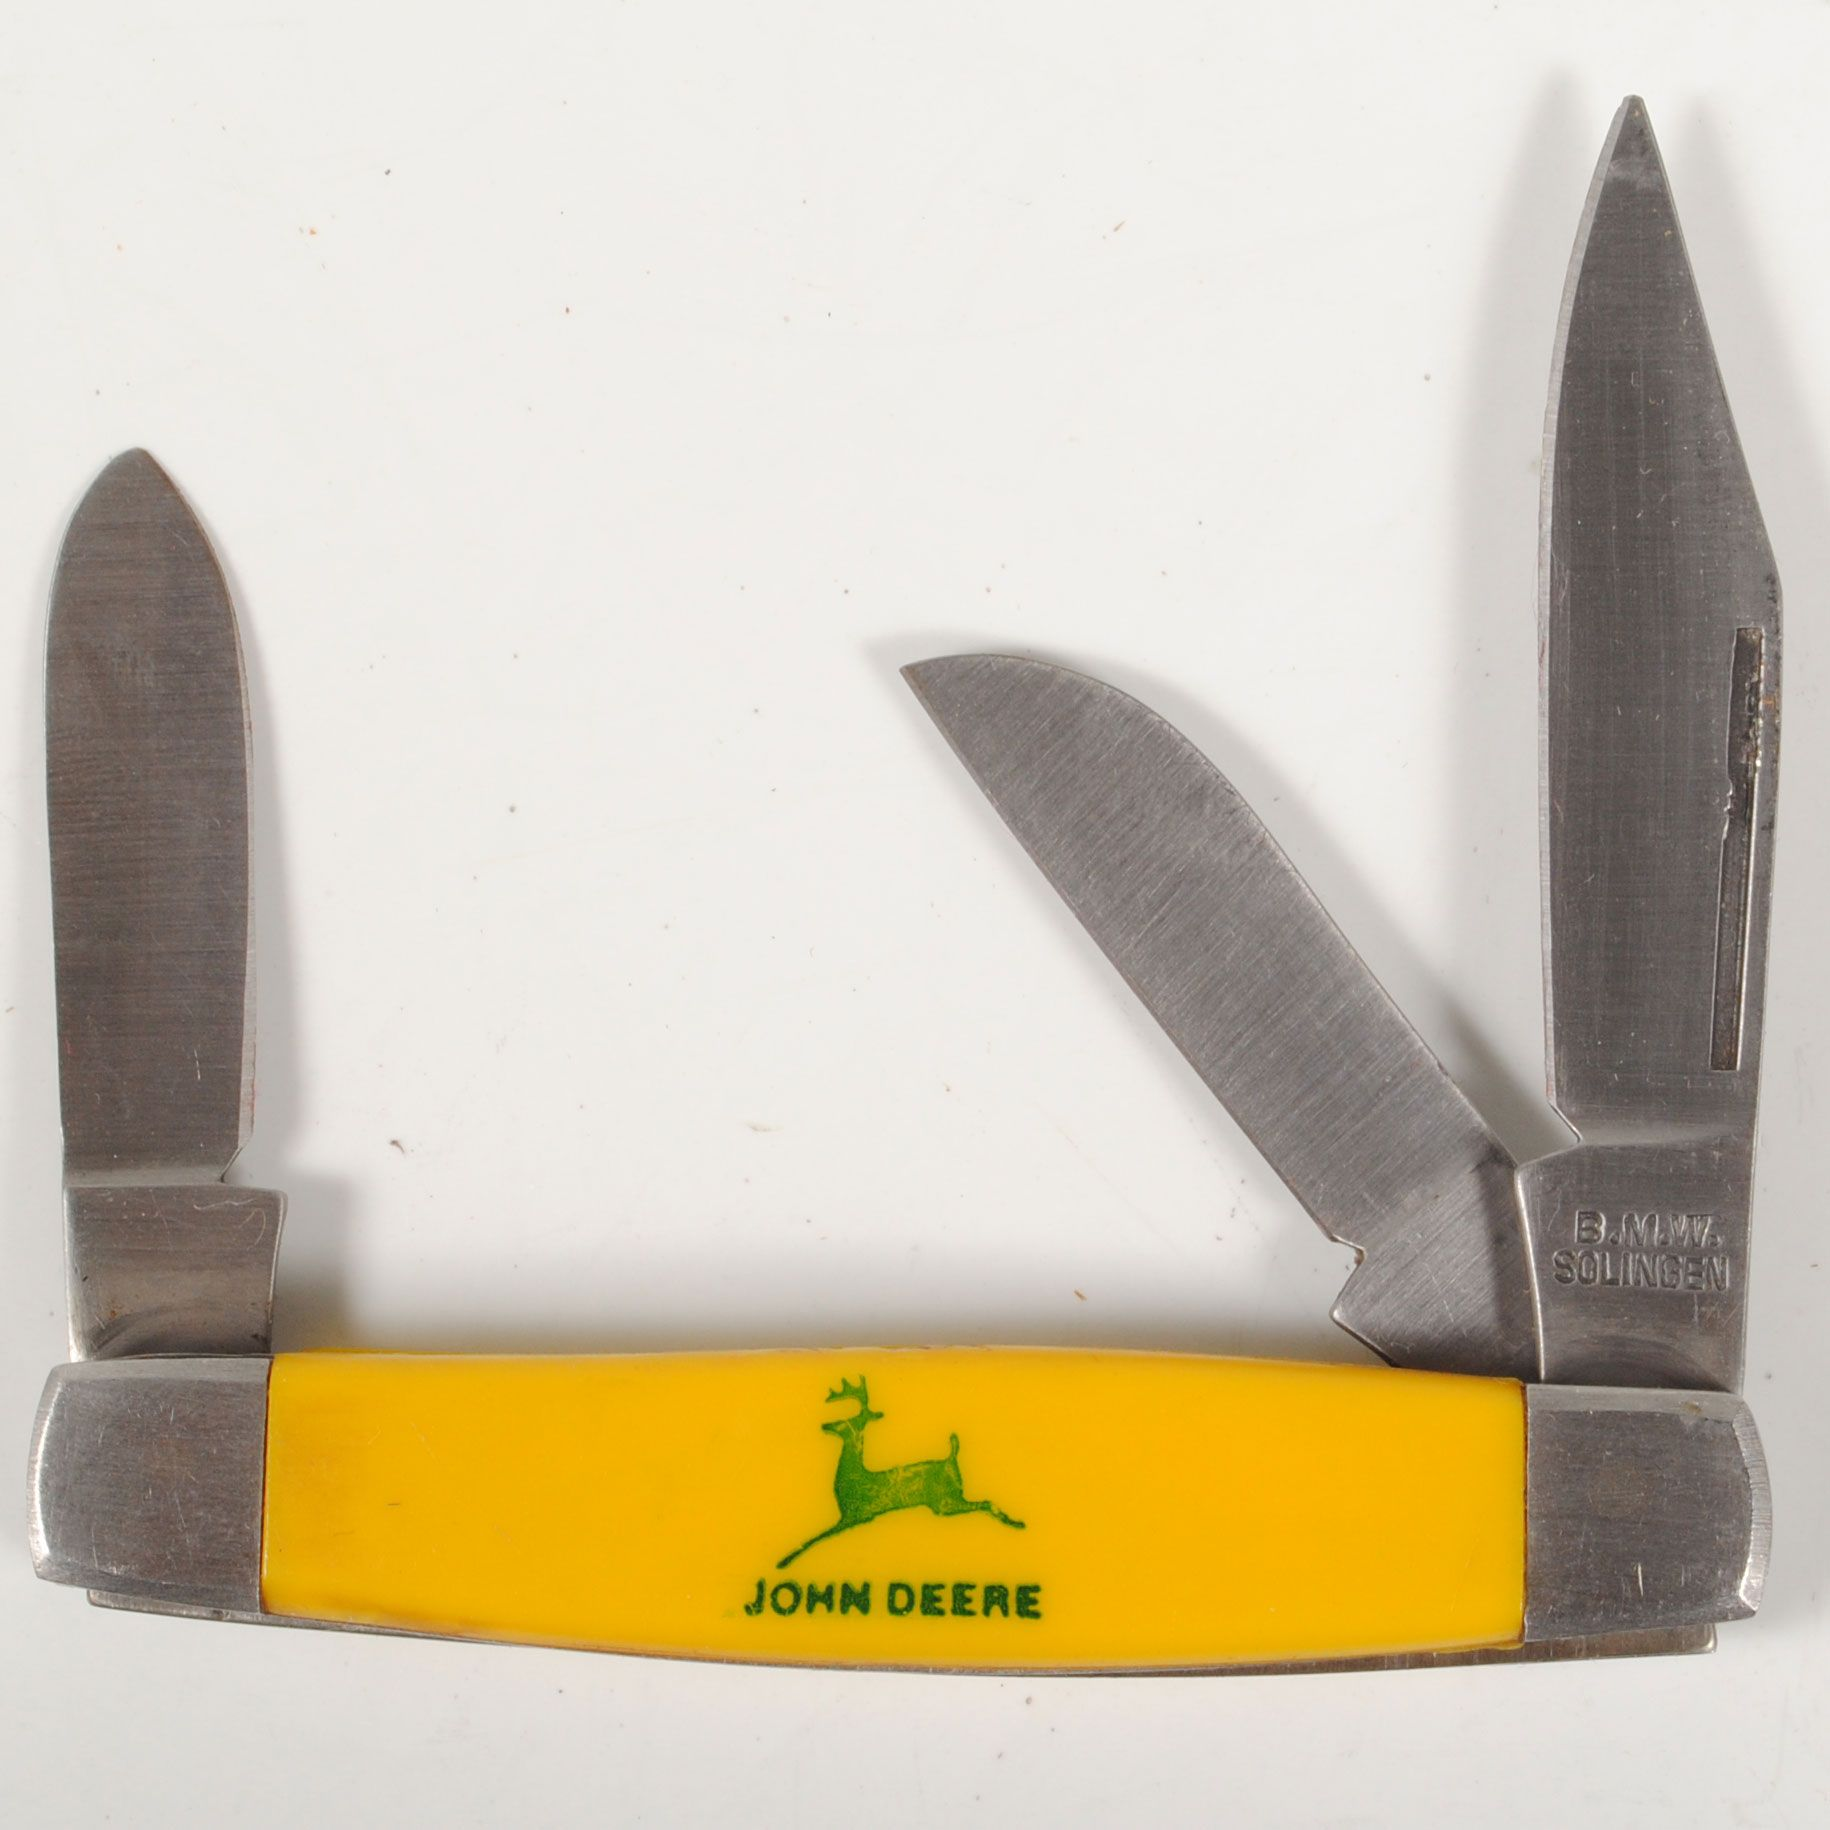 John Deere B M w Solingen 3 Blade Stockman Style Folding Pocket Knife